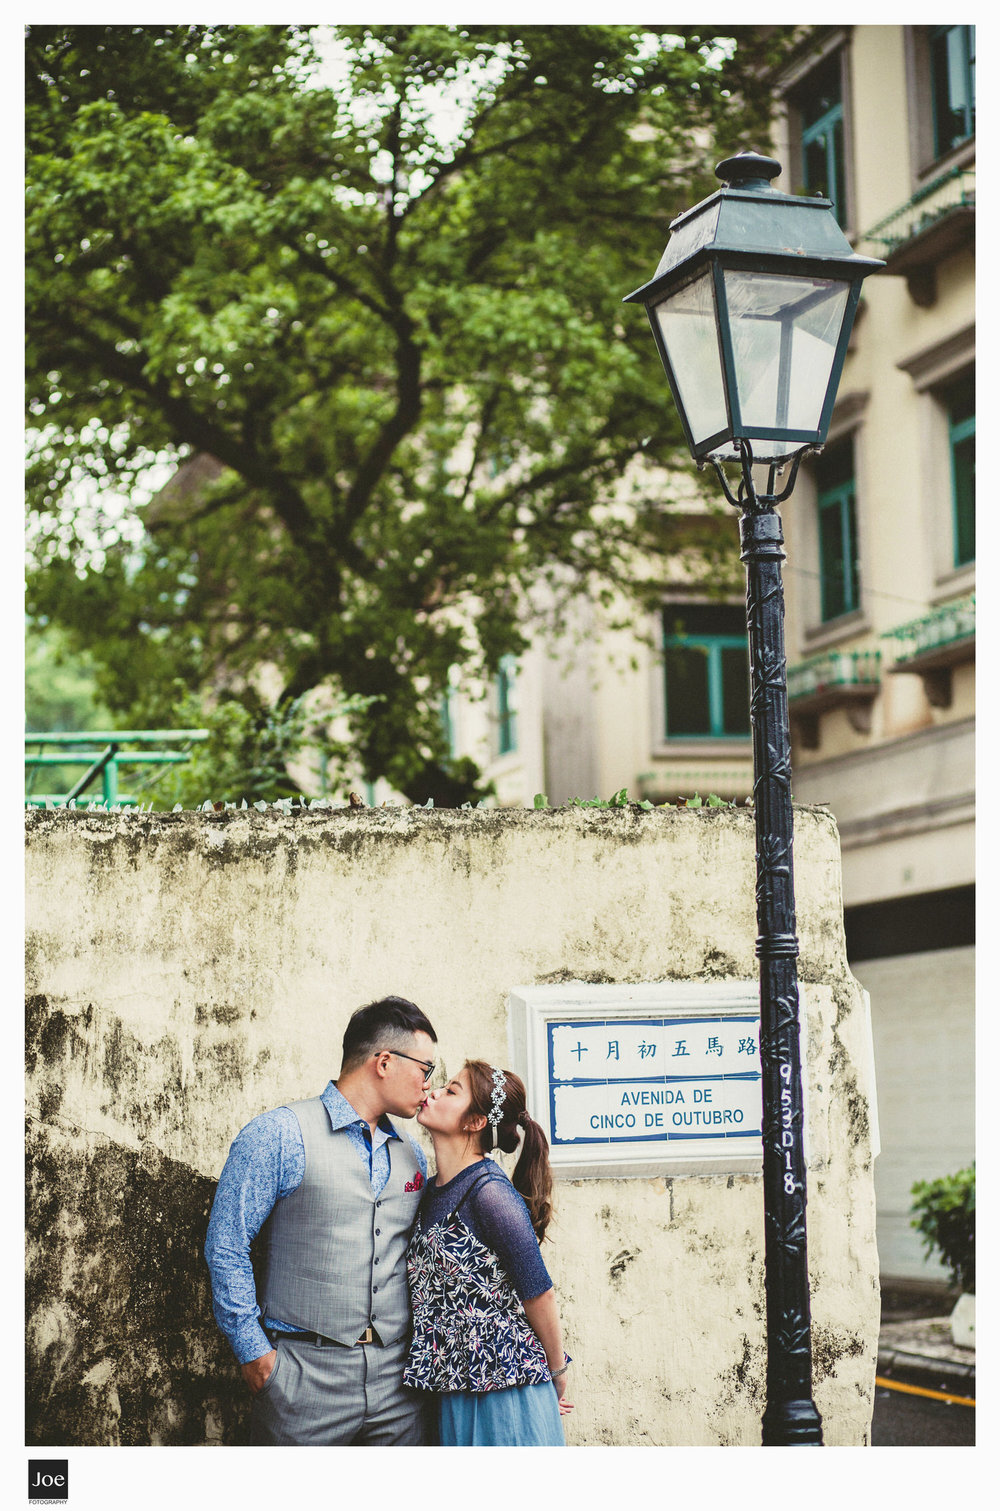 070-coloane-village-pre-wedding-jie-min-joe-fotography.jpg